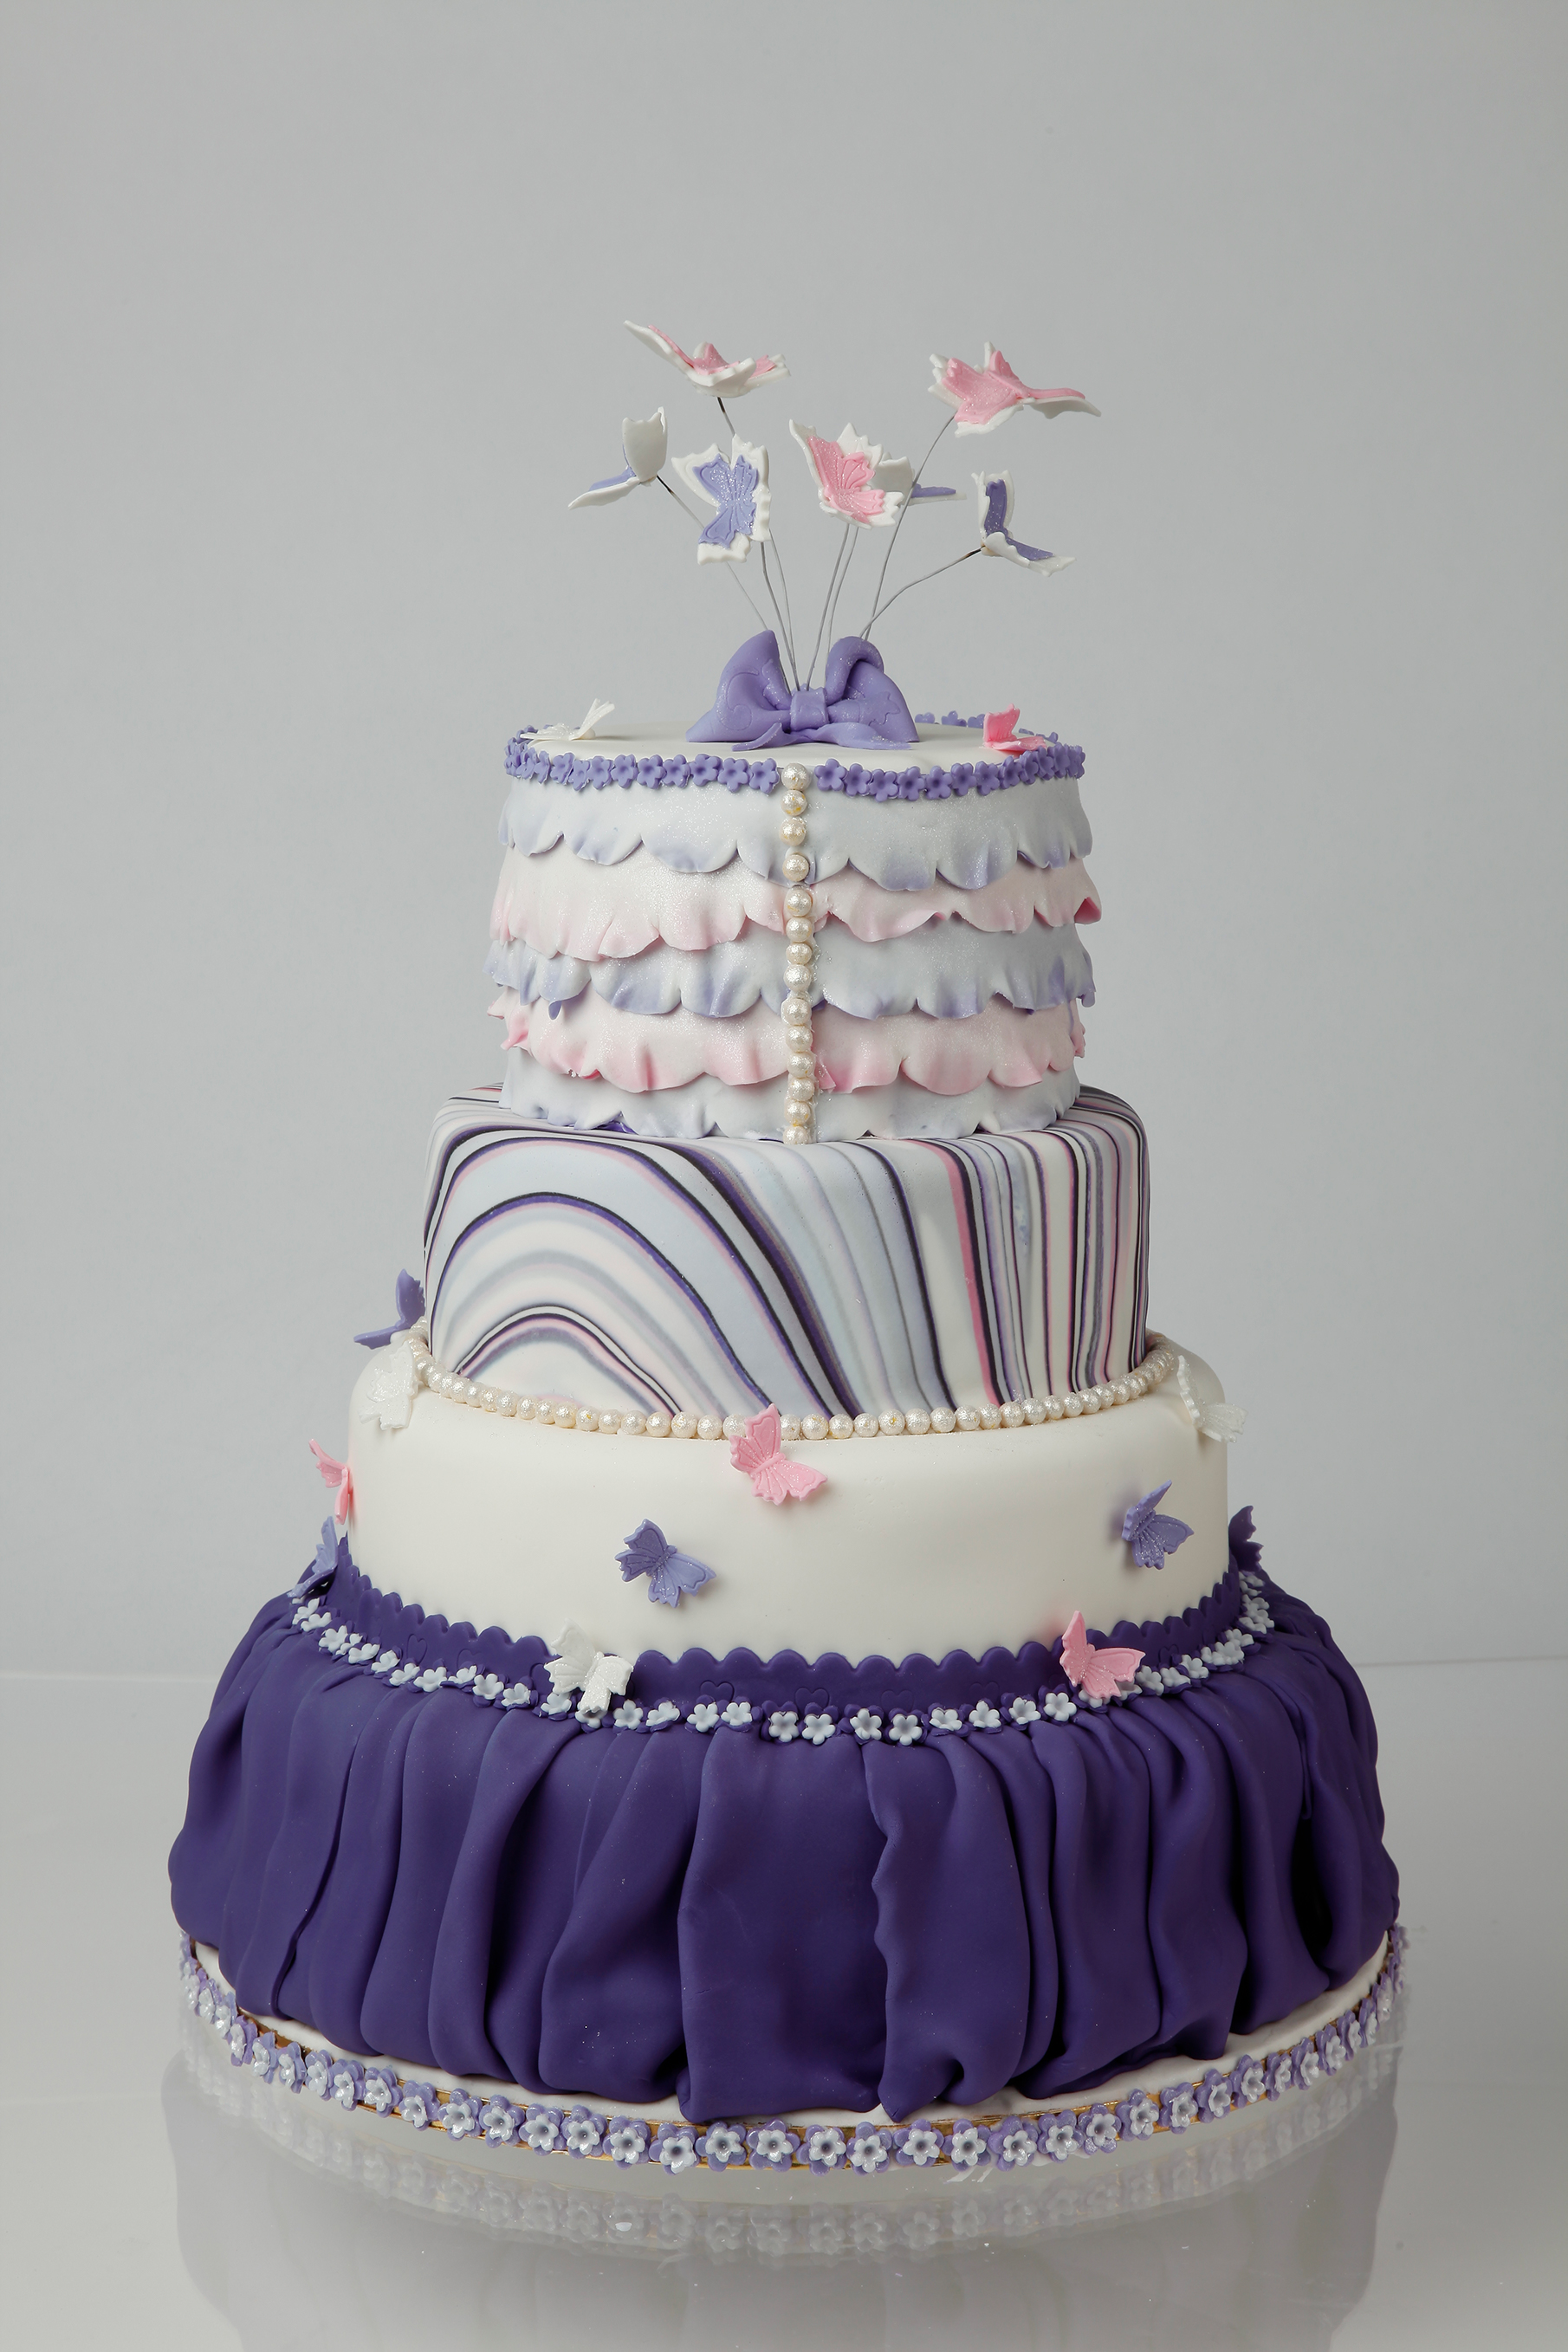 Tiered Fondant Marble Cake